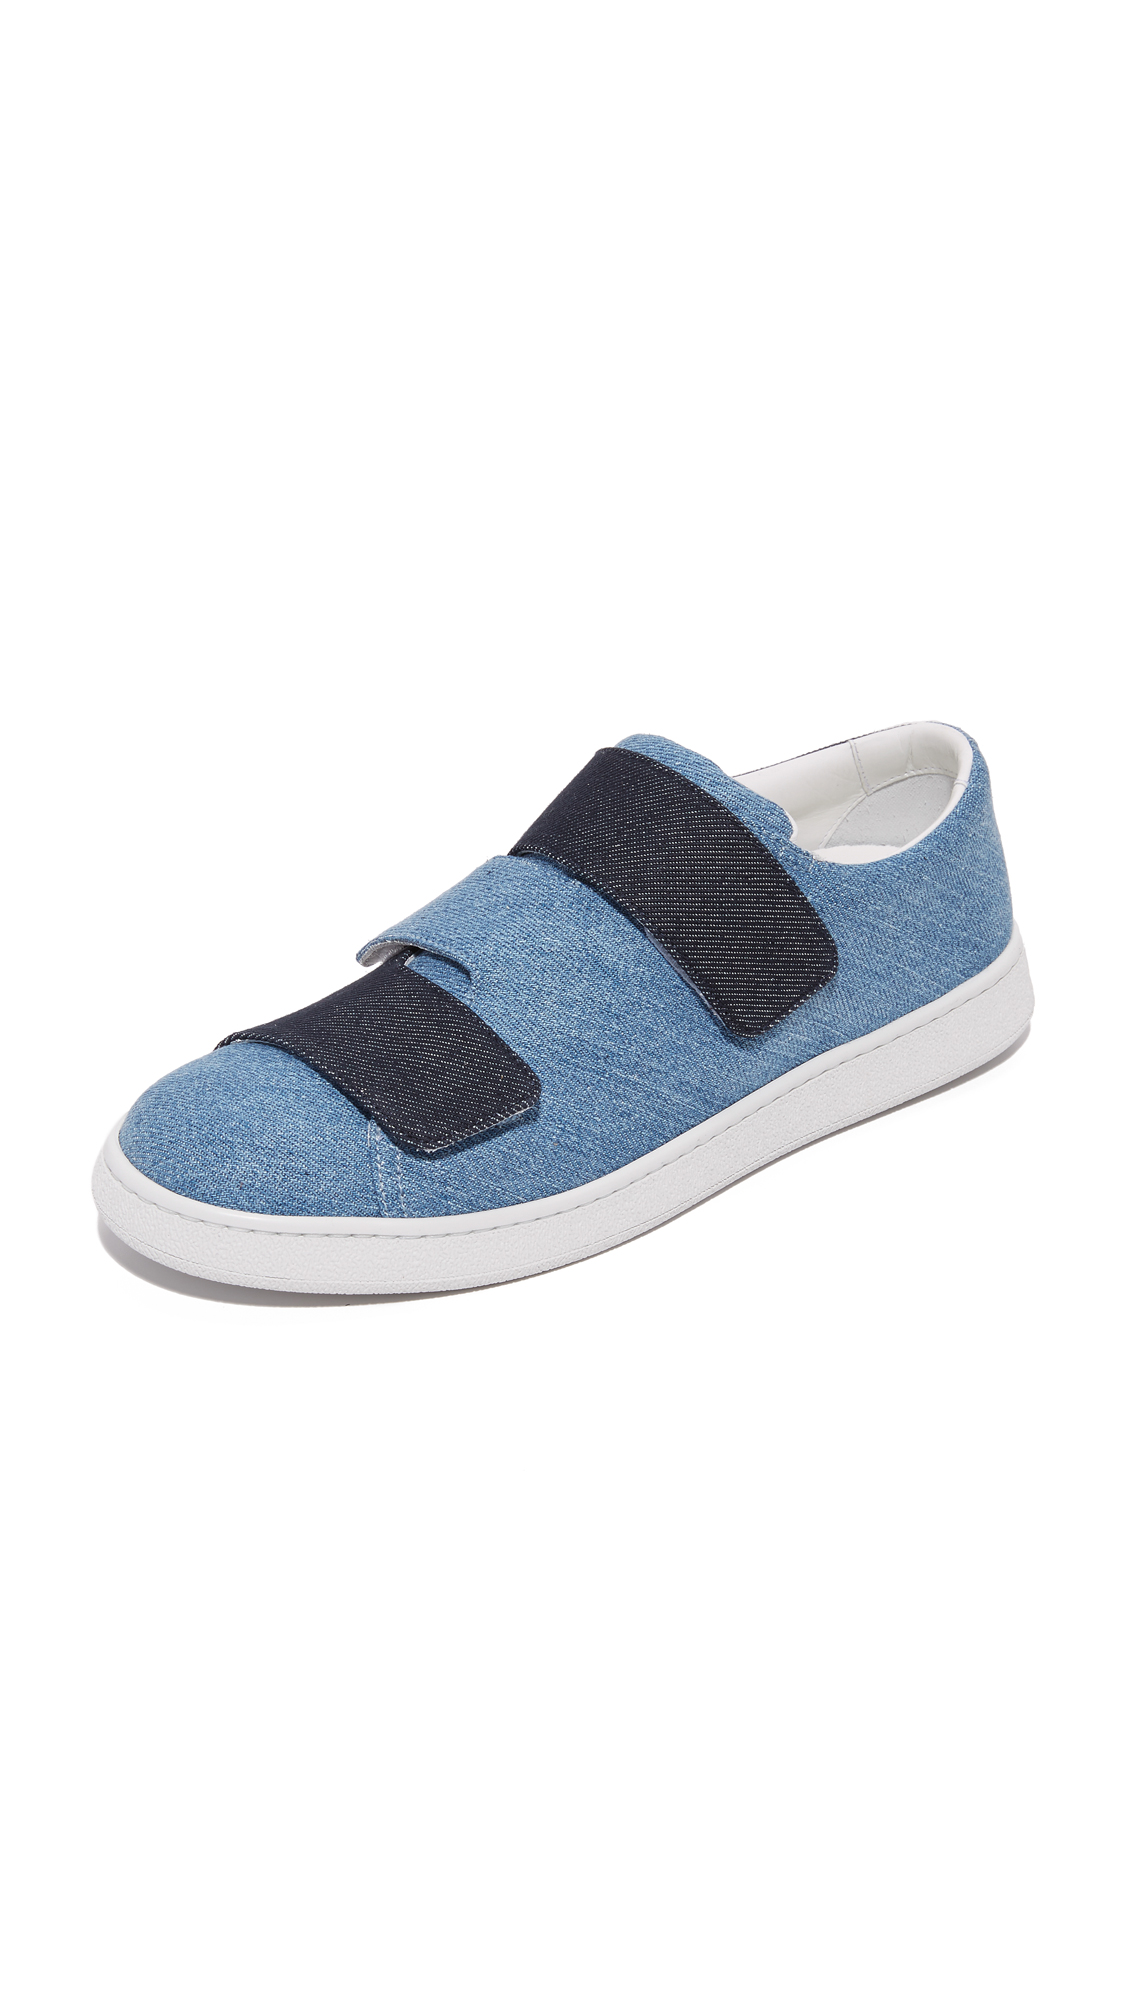 Acne Studios Triple Denim Sneakers - Denim Blue Combo at Shopbop